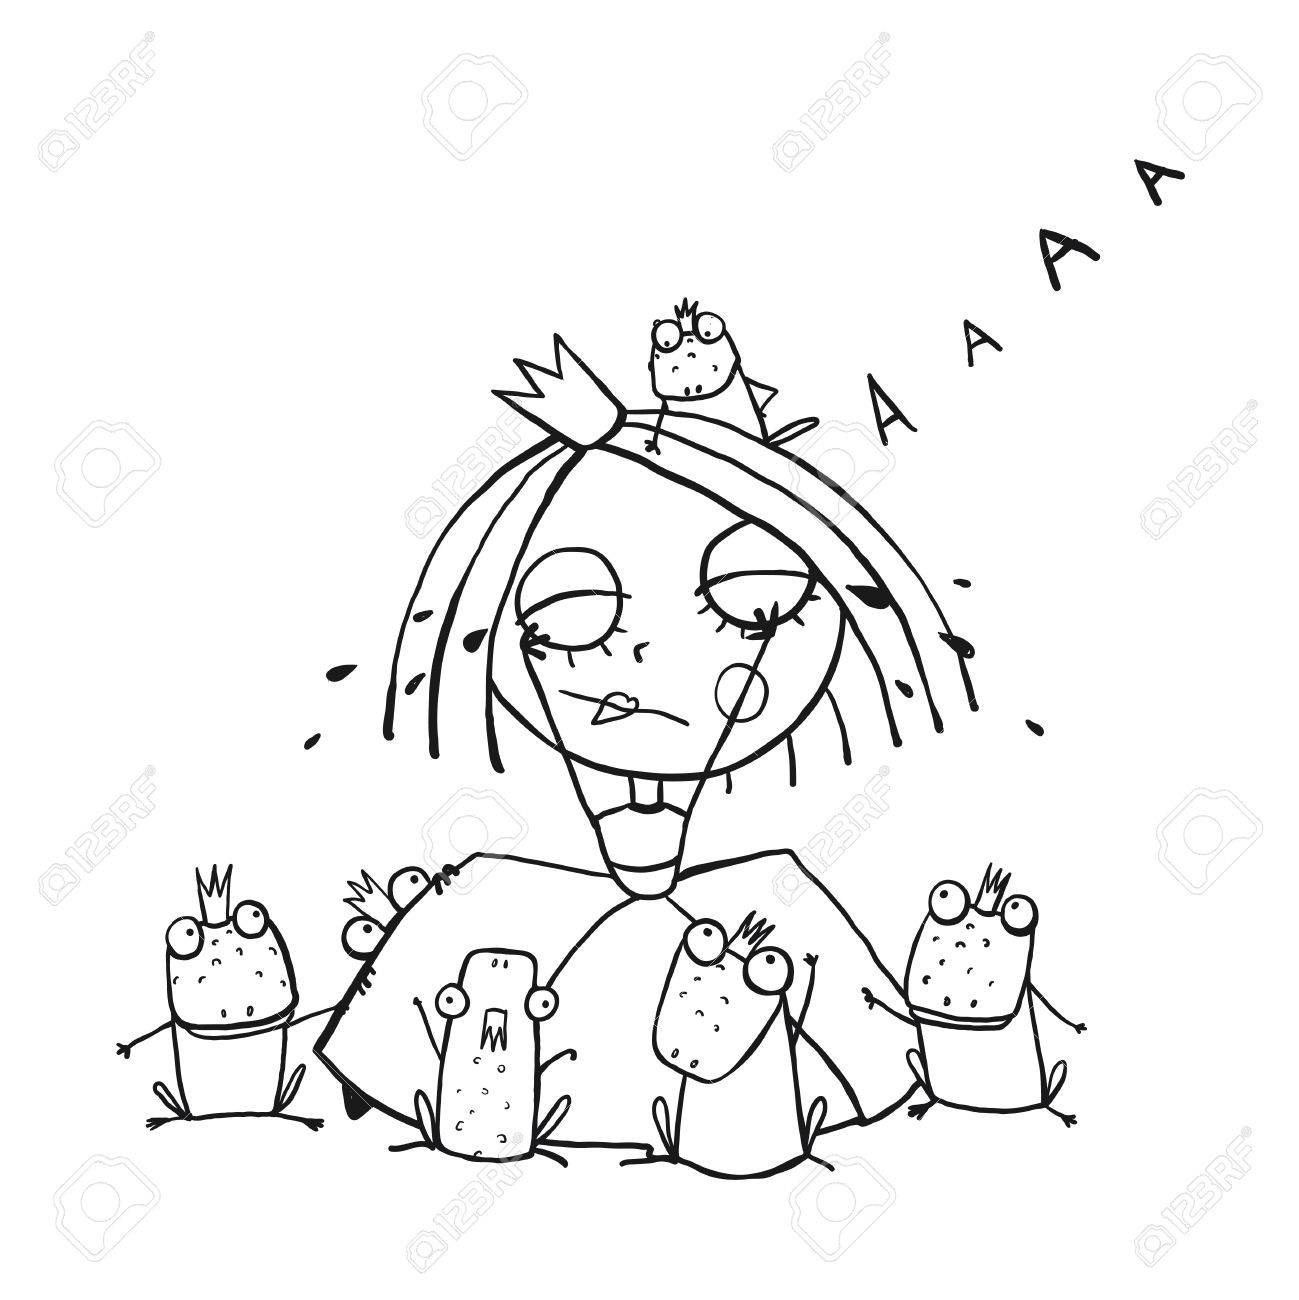 Co coloring sheet prince frog - Co Coloring Sheet Prince Frog Princess Crying And Many Prince Frogs Coloring Page Outline Drawing